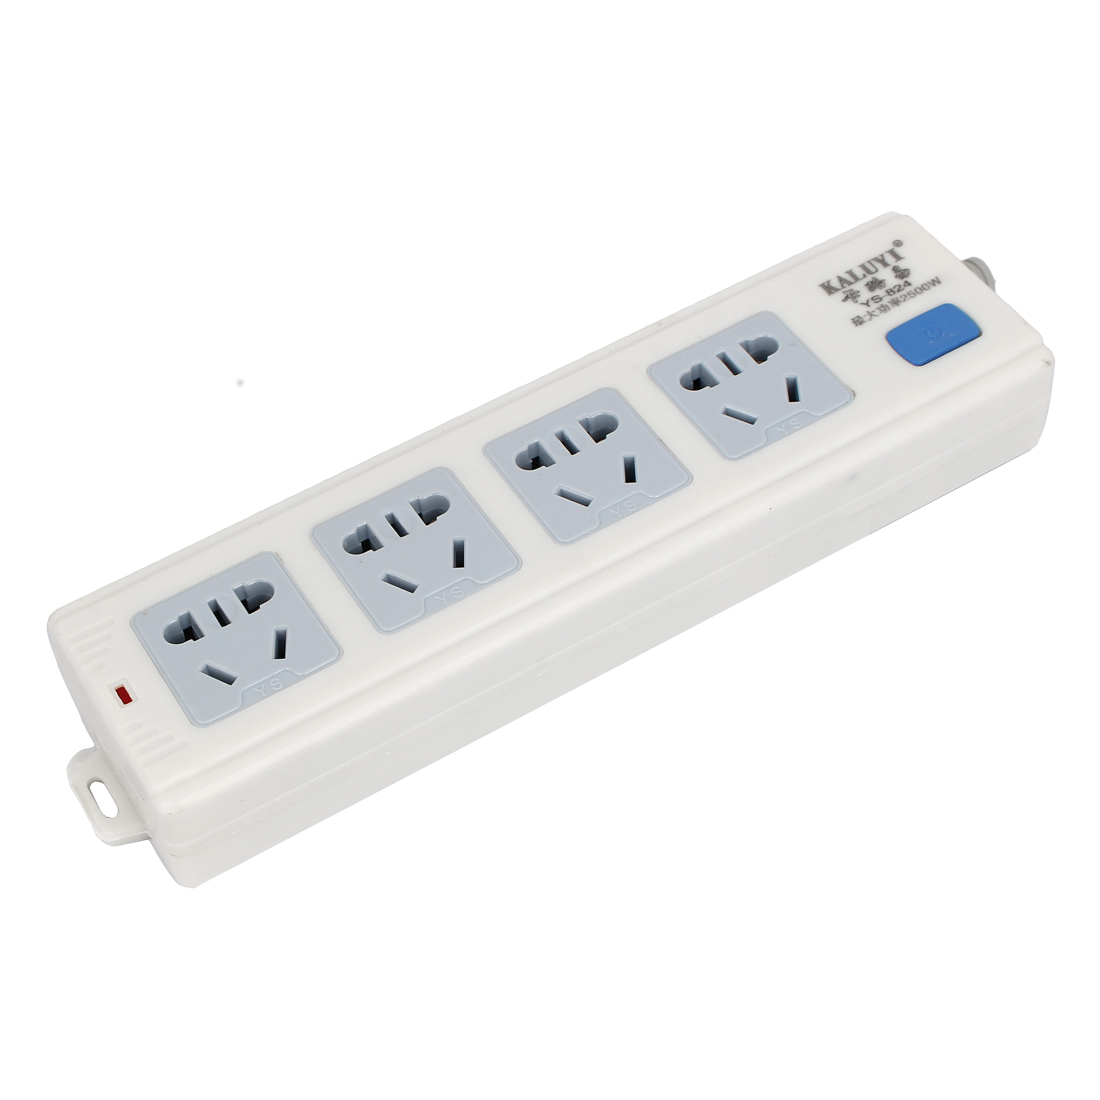 4 Position Rewirable Design Extension Socket Power Strip White AC 250V